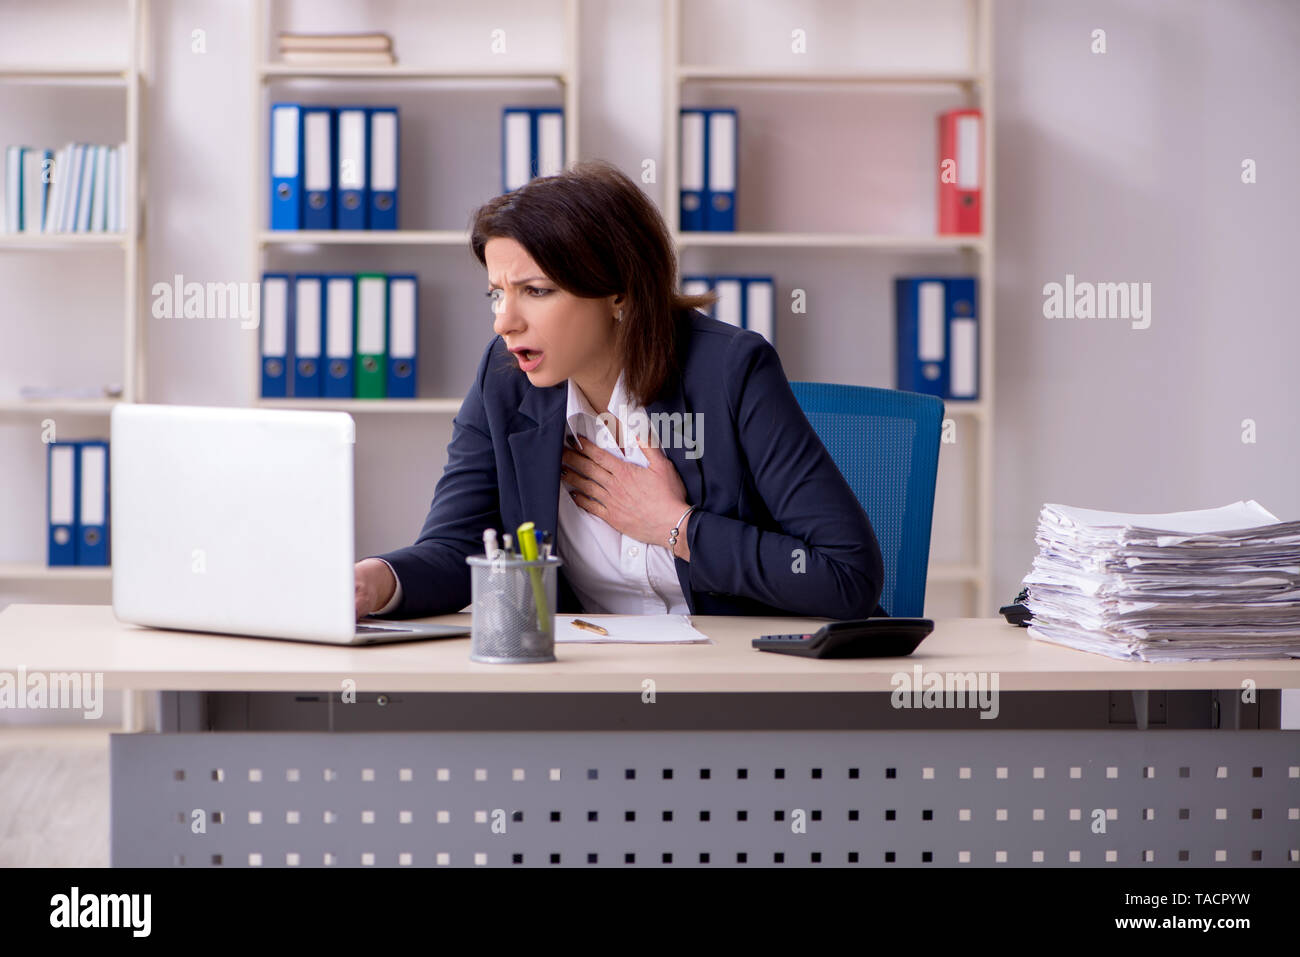 Middle-aged female employee suffering in the office - Stock Image